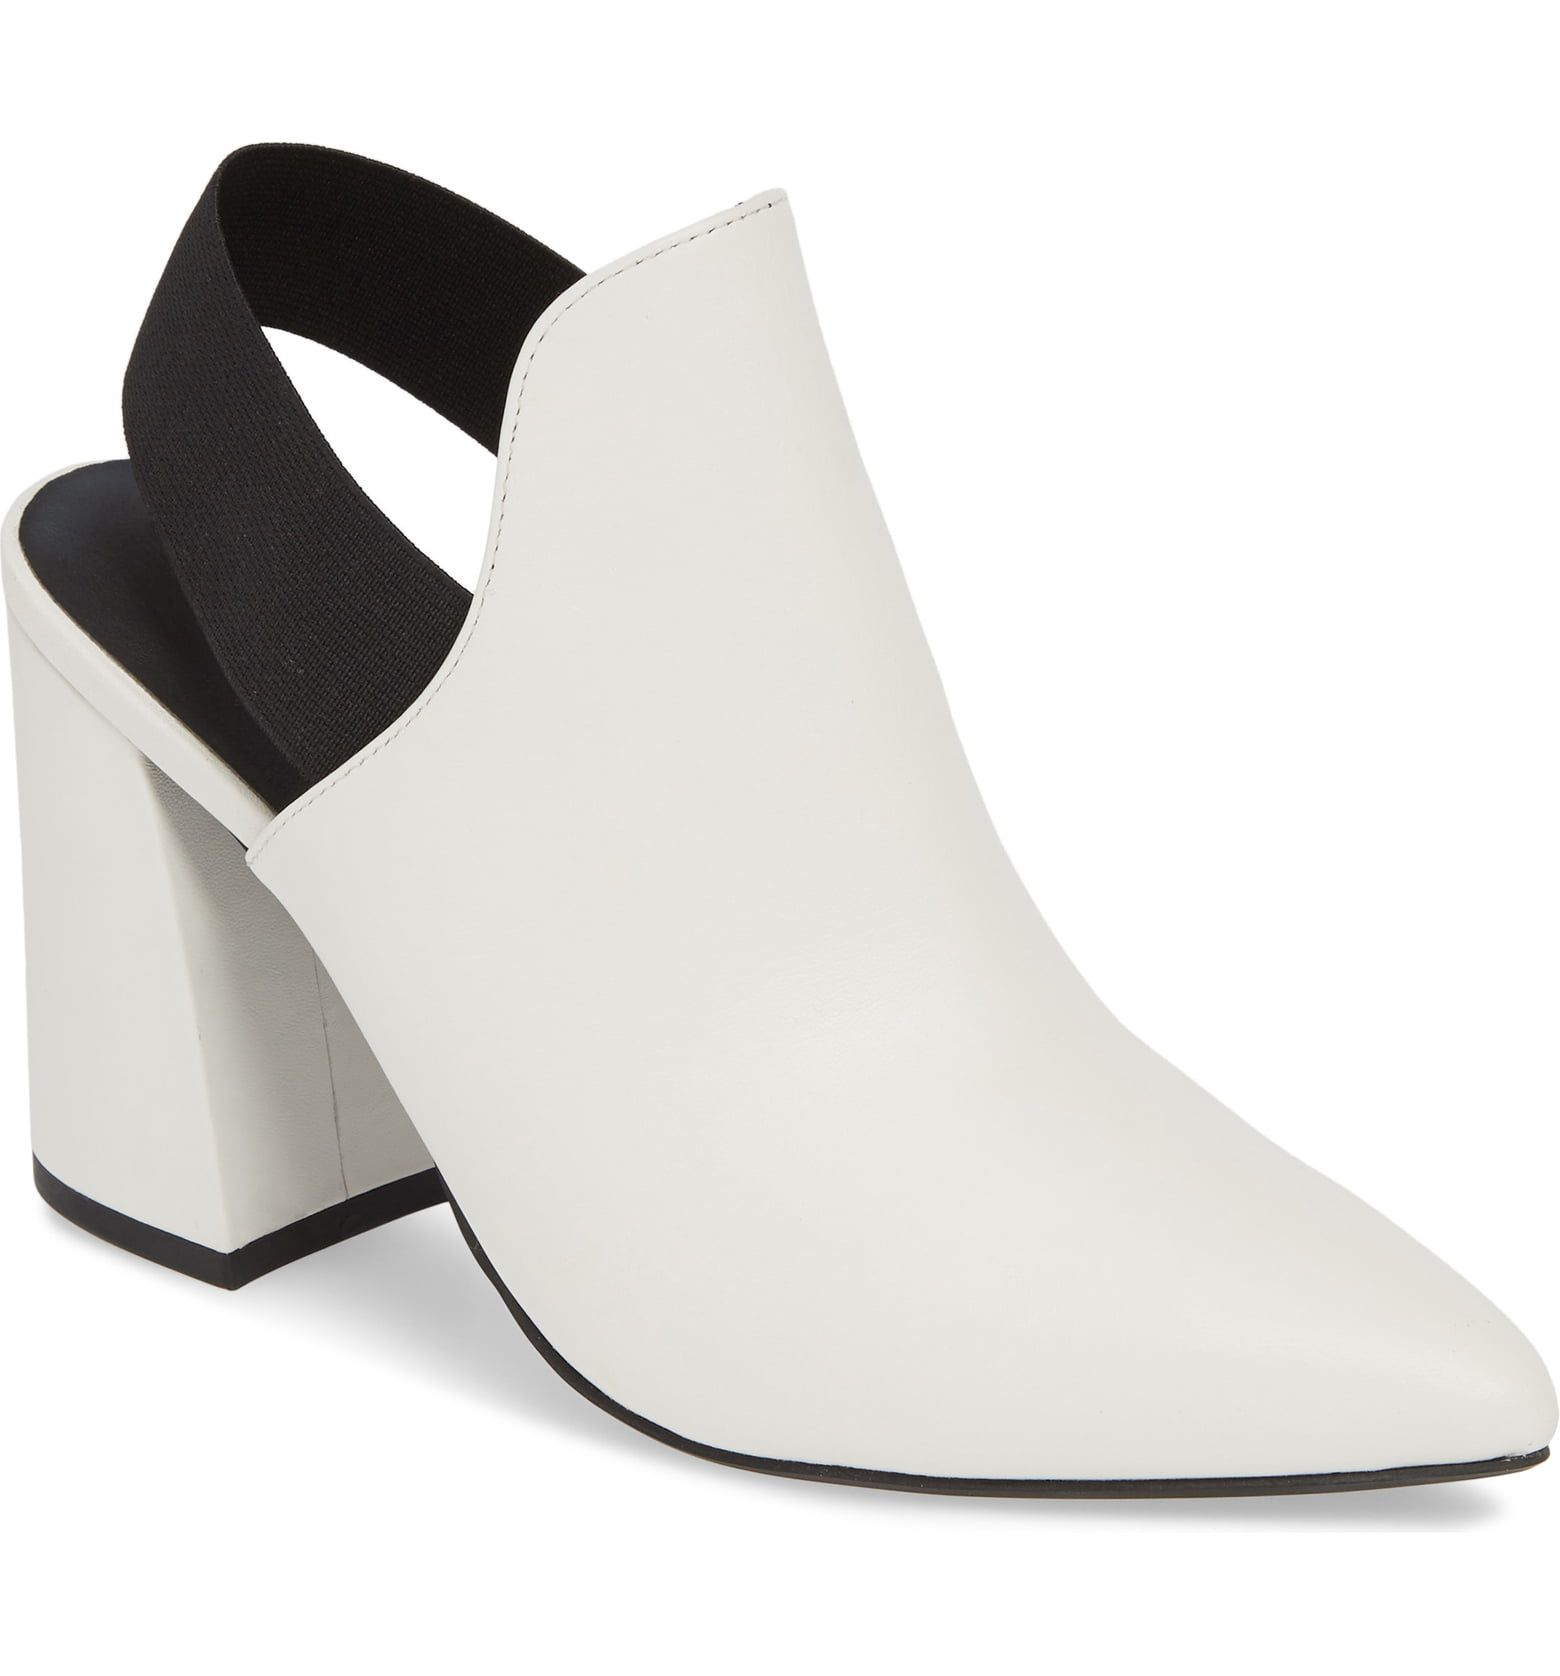 Bridal Shoes At Nordstrom: Pin On Baller Wedding Shoes For Eva